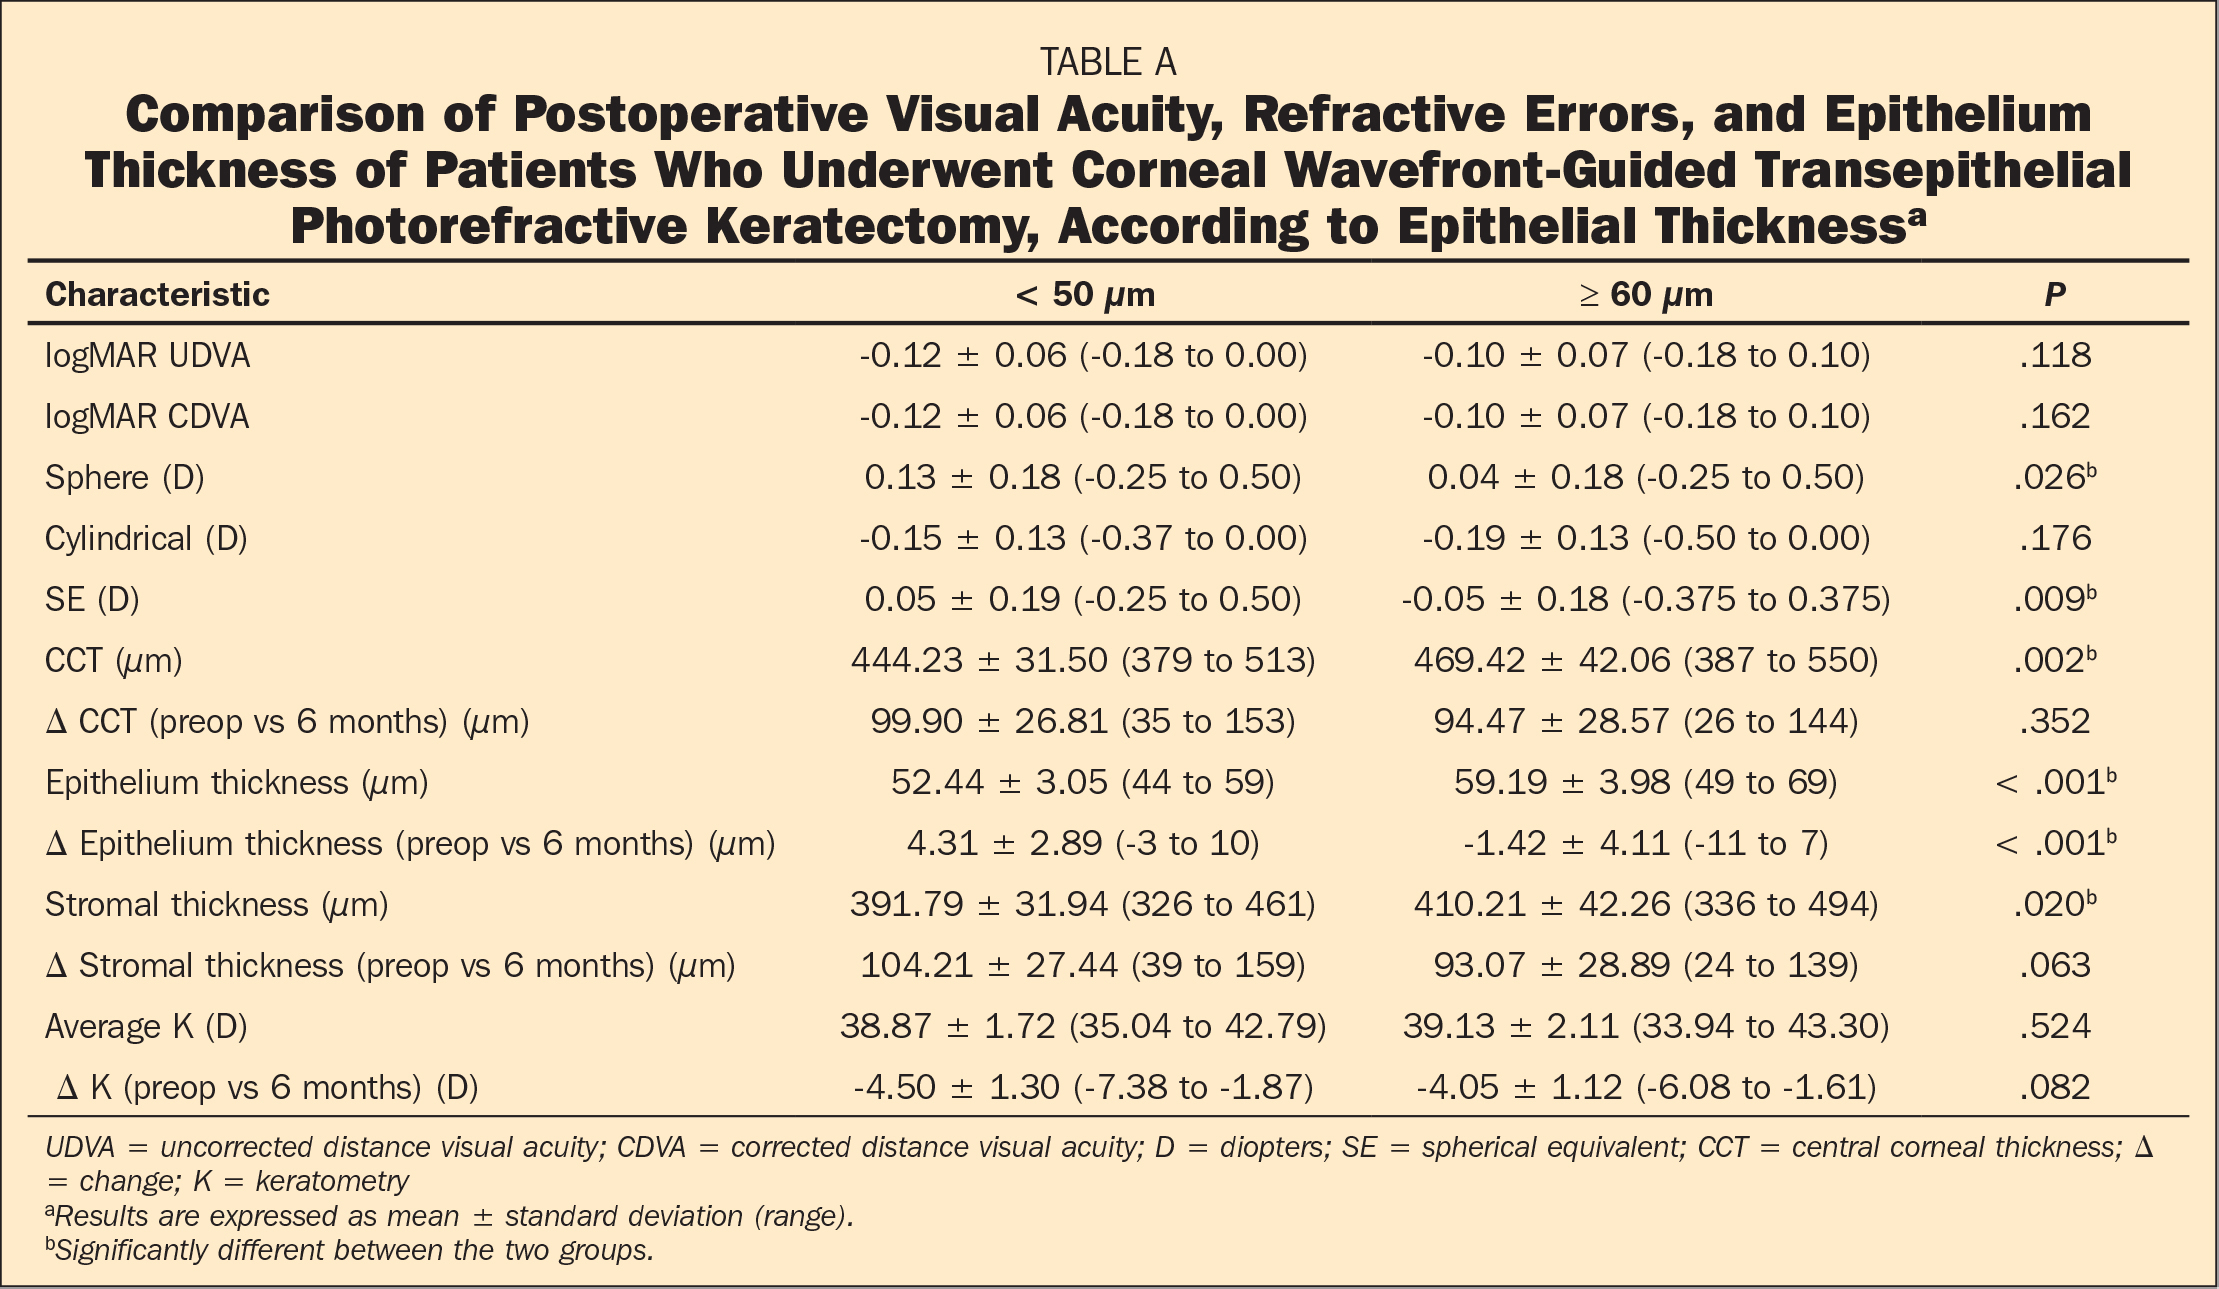 Comparison of Postoperative Visual Acuity, Refractive Errors, and Epithelium Thickness of Patients Who Underwent Corneal Wavefront-Guided Transepithelial Photorefractive Keratectomy, According to Epithelial Thicknessa